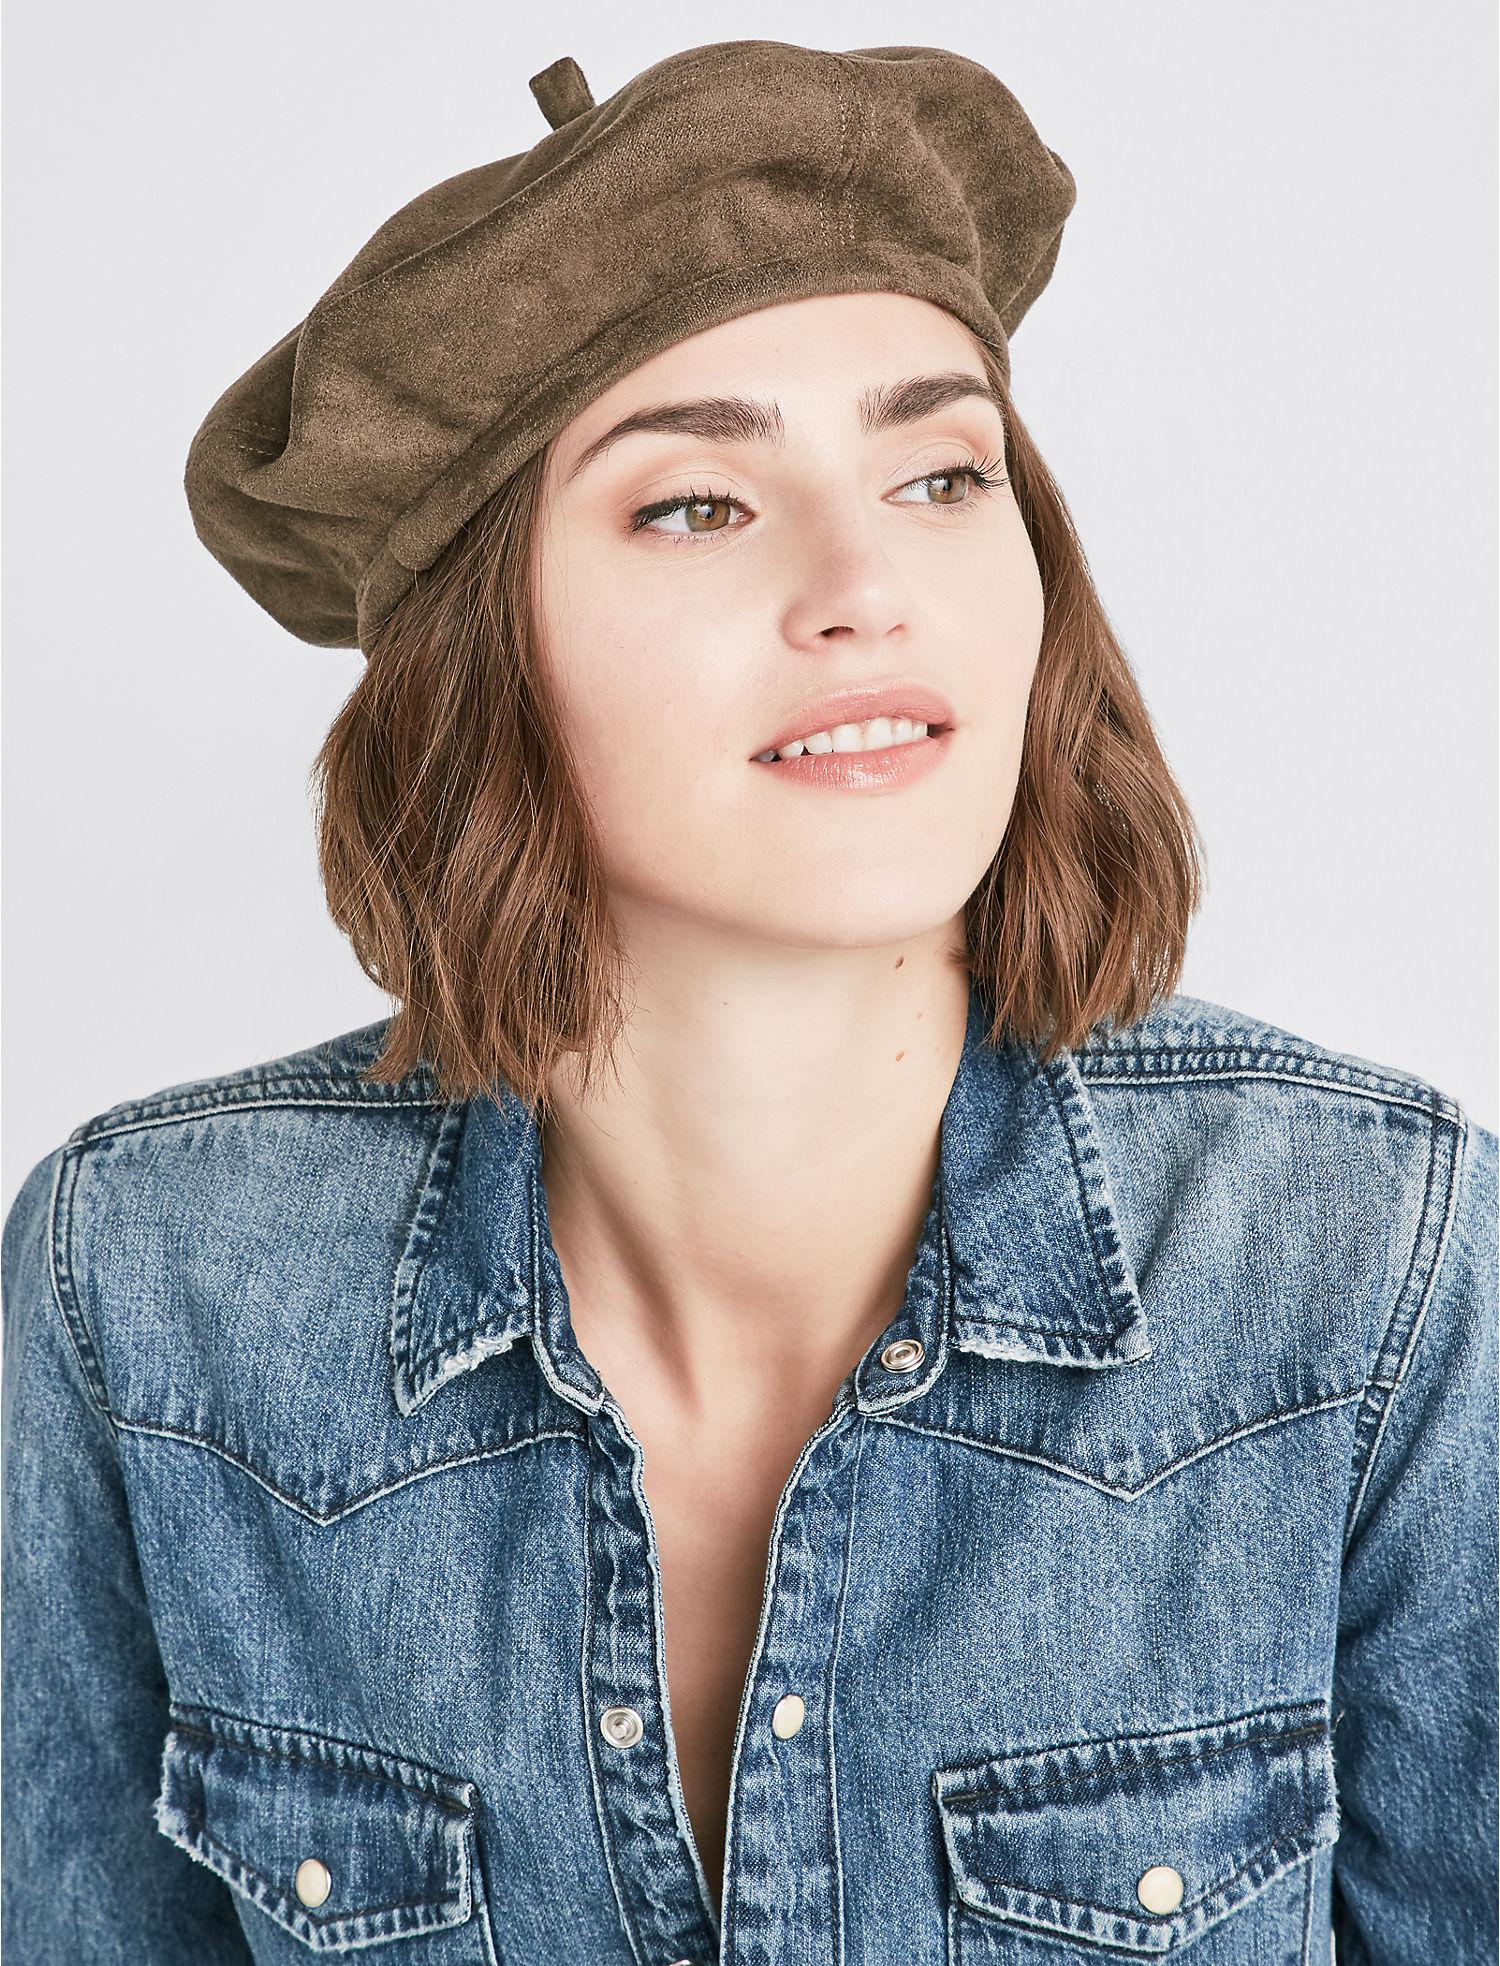 723965cdb14ee https   www.lyst.com accessories lucky-brand-faux-suede-beret  2019 ...